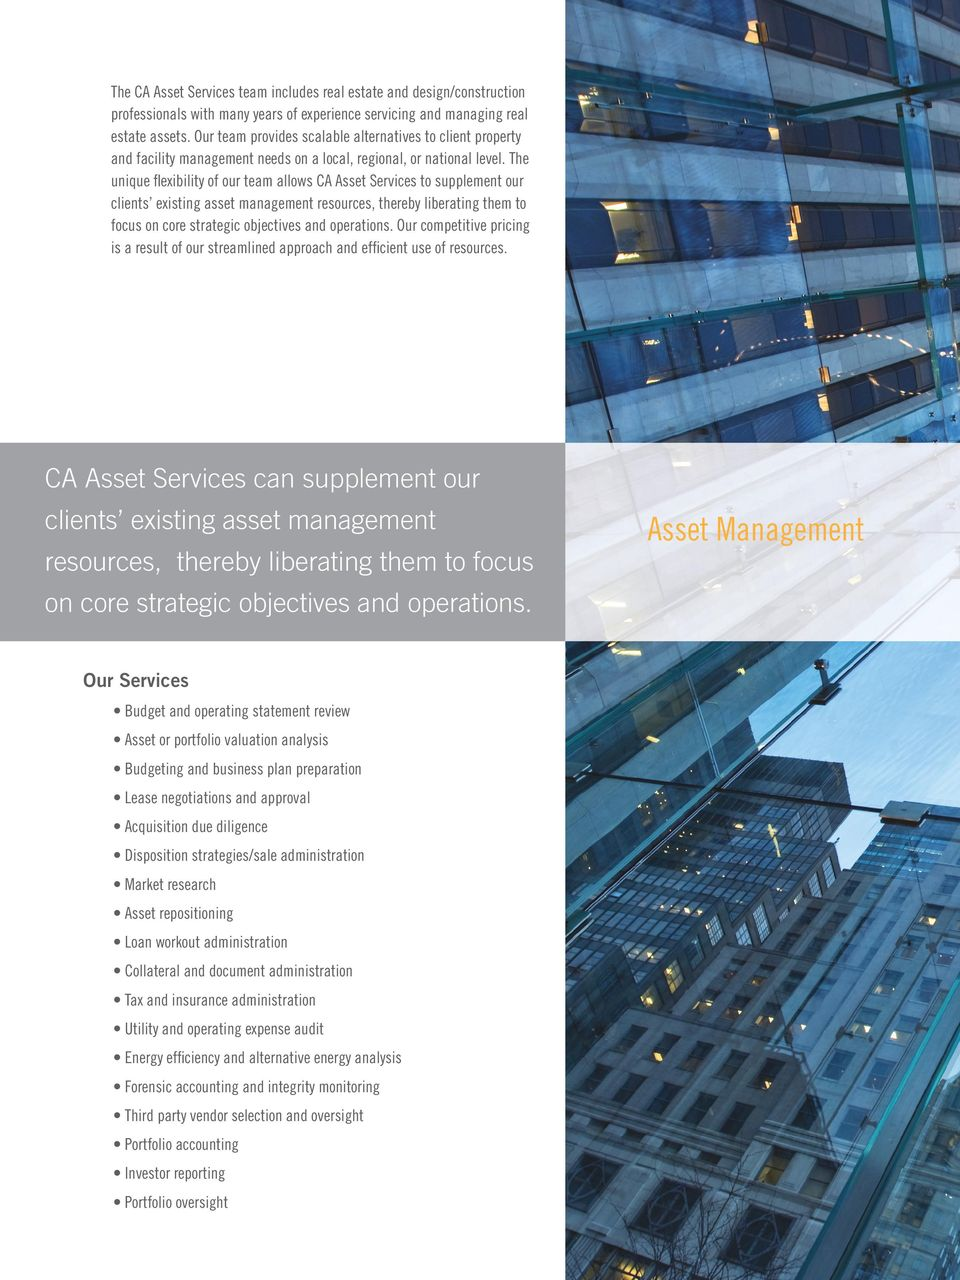 The unique flexibility of our team allows CA Asset Services to supplement our clients existing asset management resources, thereby liberating them to focus on core strategic objectives and operations.